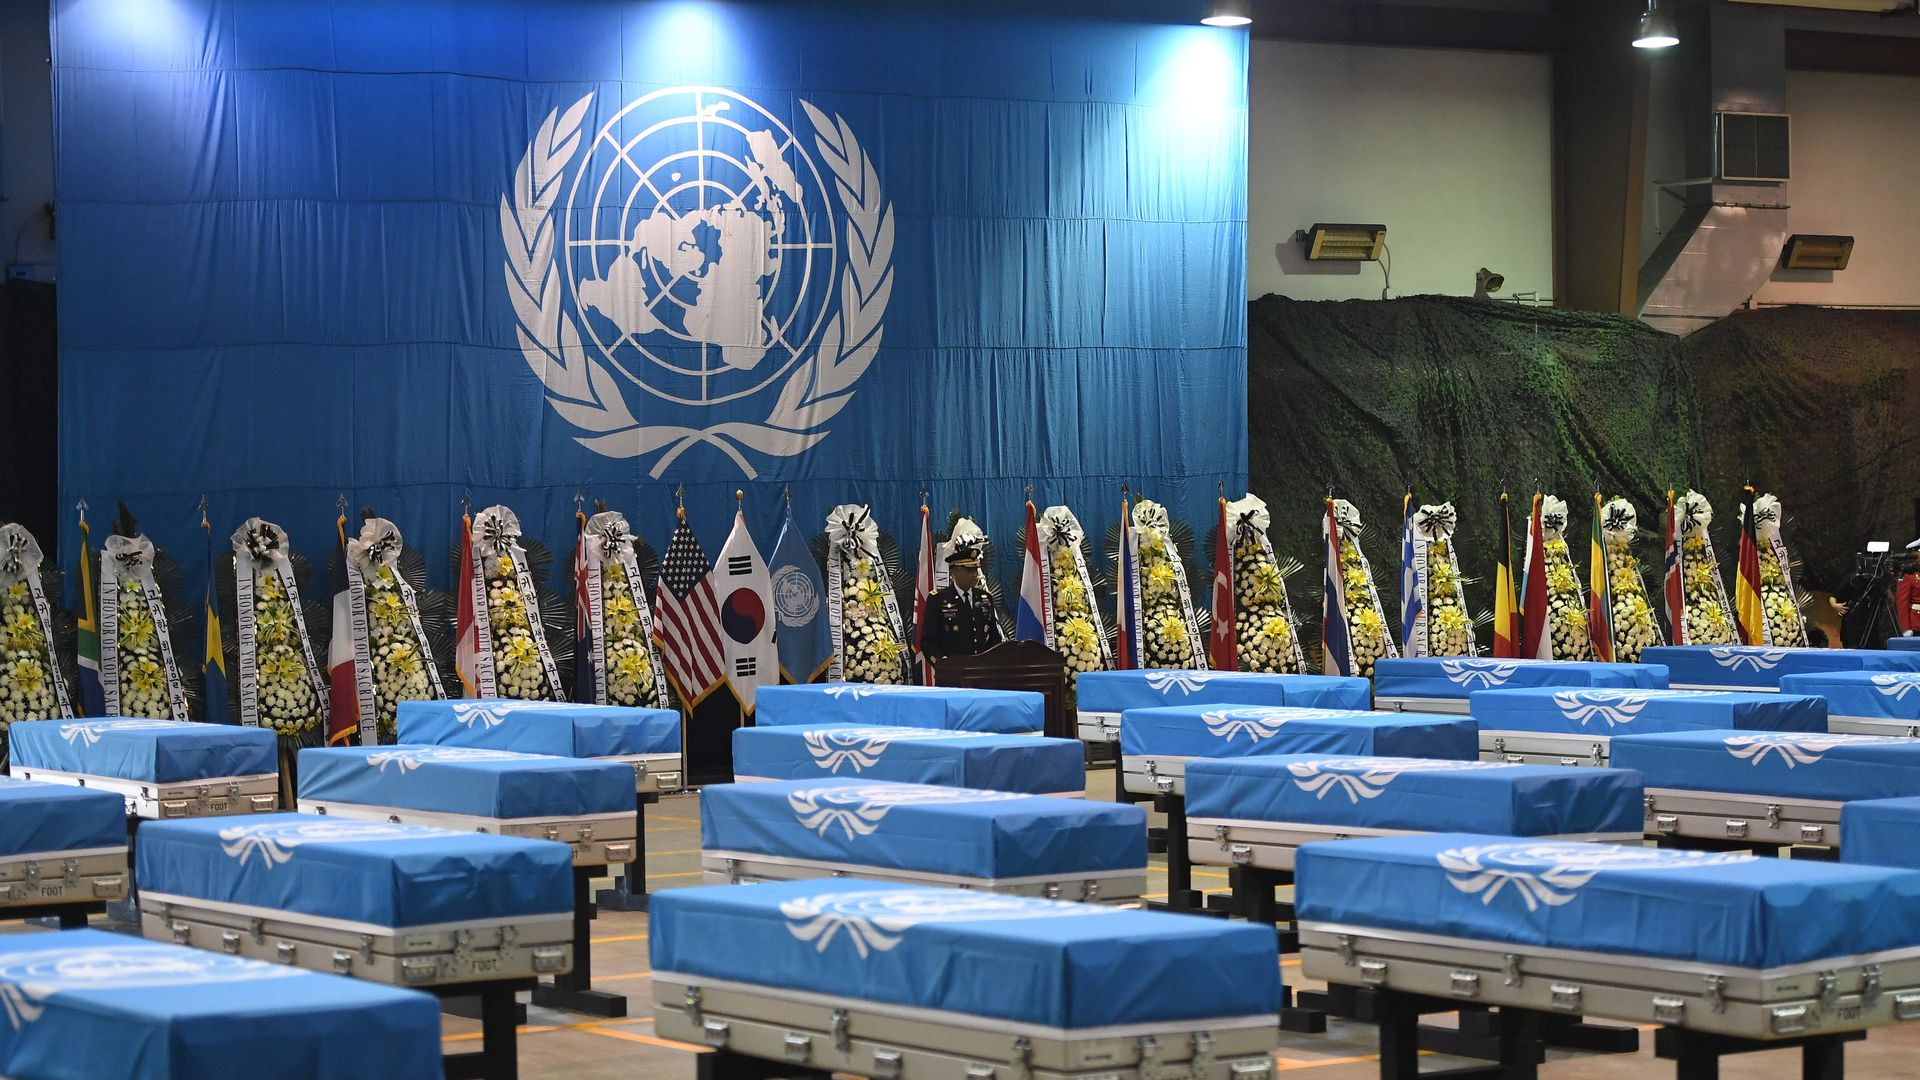 Caskets covered in blue sheets at a UN repatriation ceremony